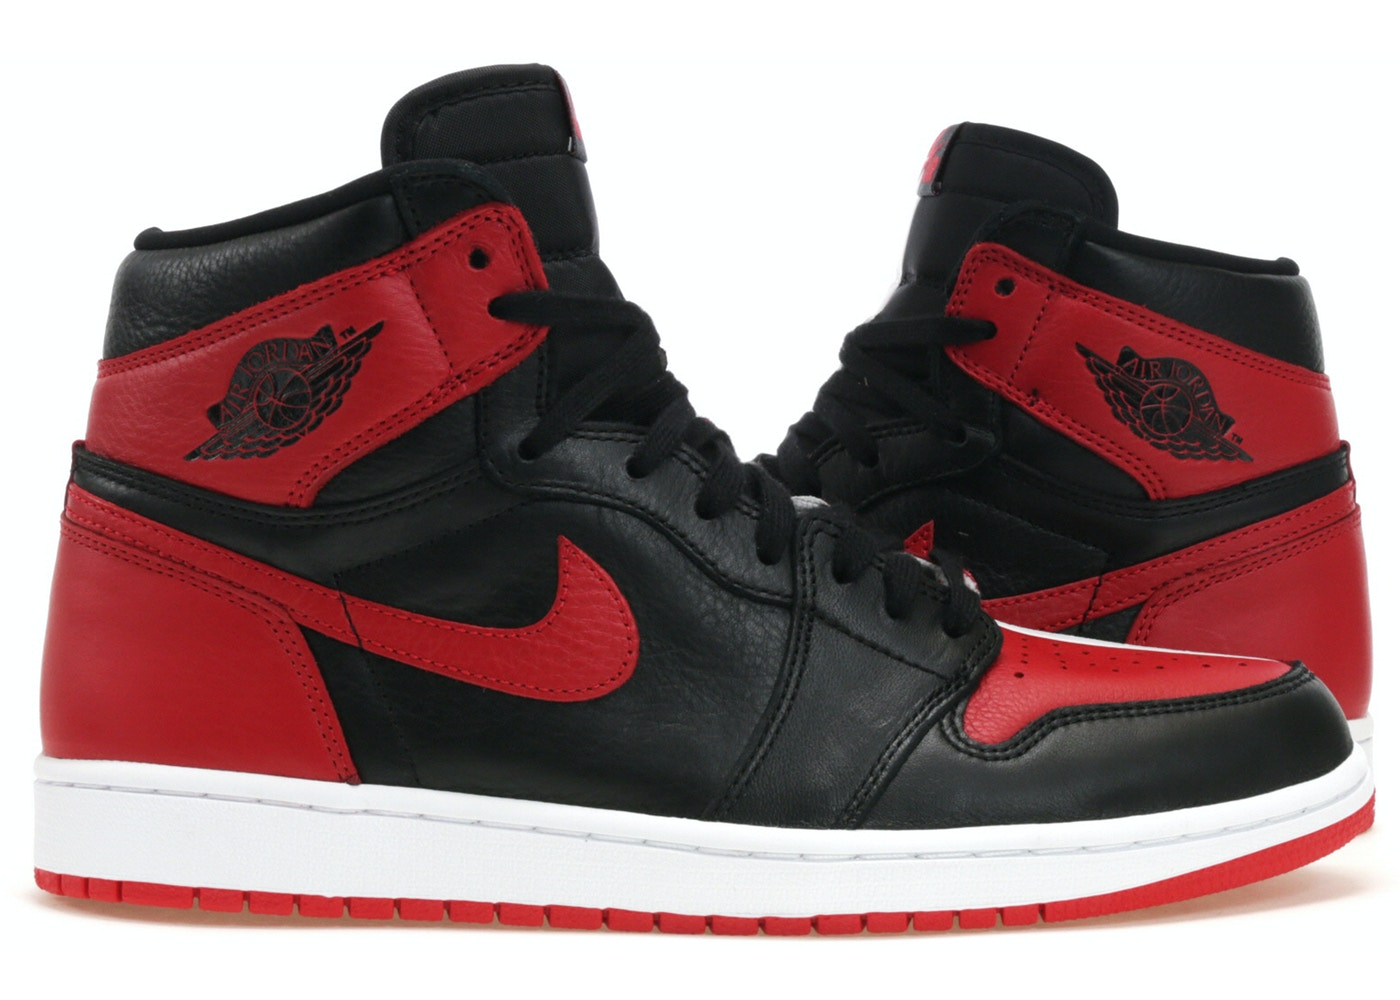 7c4021d33c7 Jordan 1 Retro High Homage To Home Chicago (Numbered). Homage To Home  Chicago (Numbered)